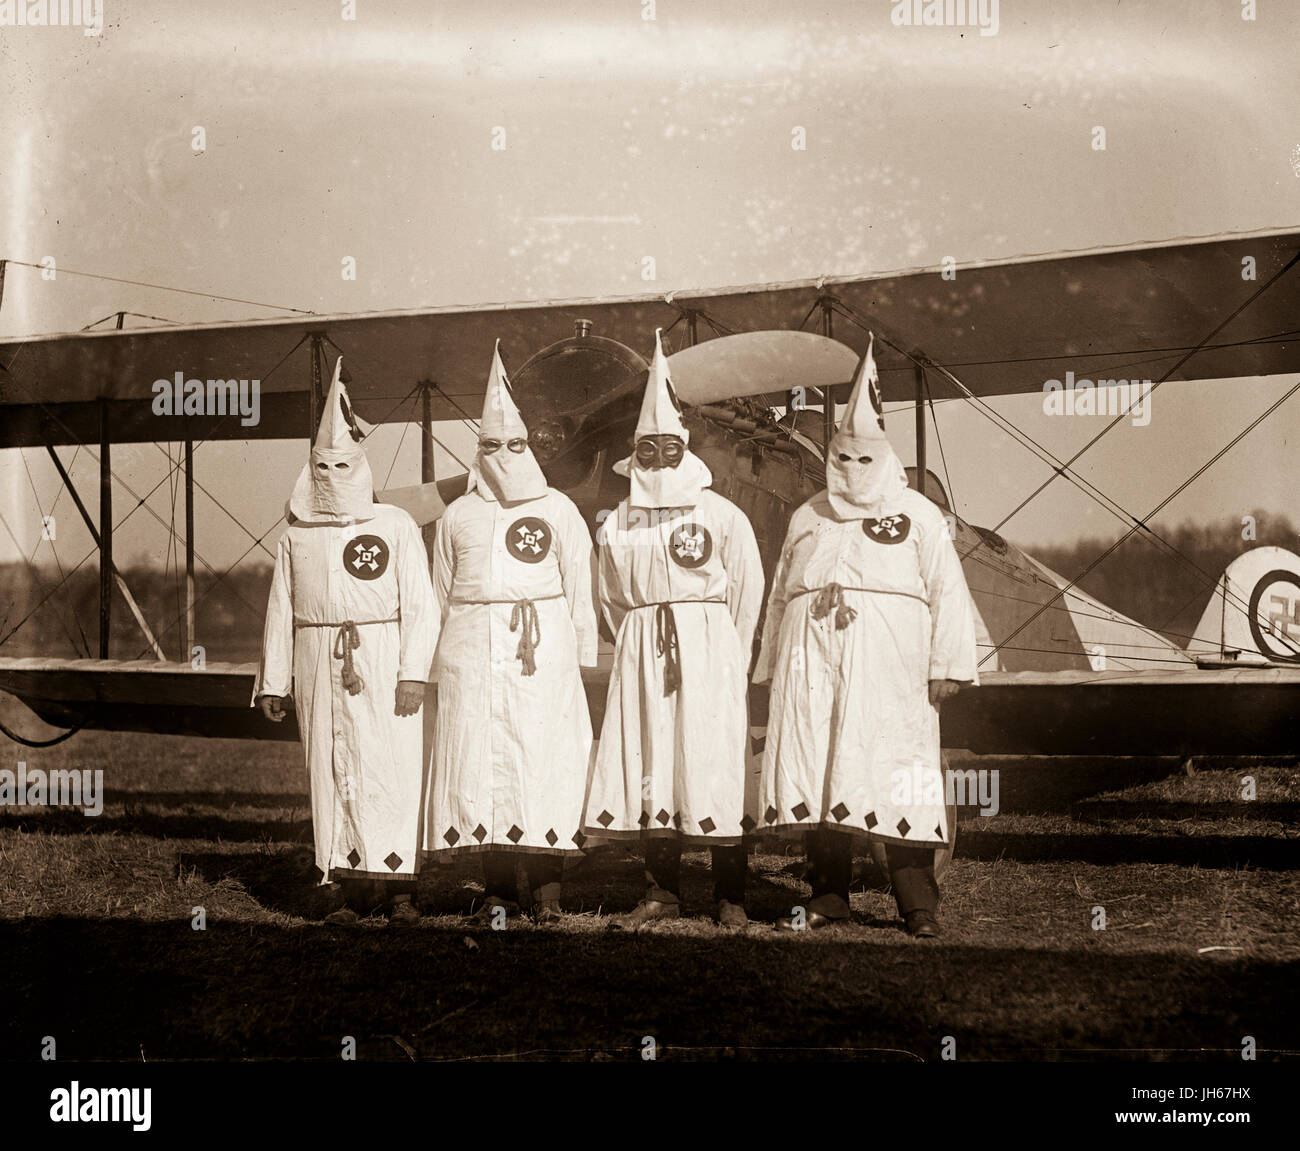 Ku Klux Klansmen use a biplane to drop and distribute KKK leaflets over the American countryside. Stock Photo